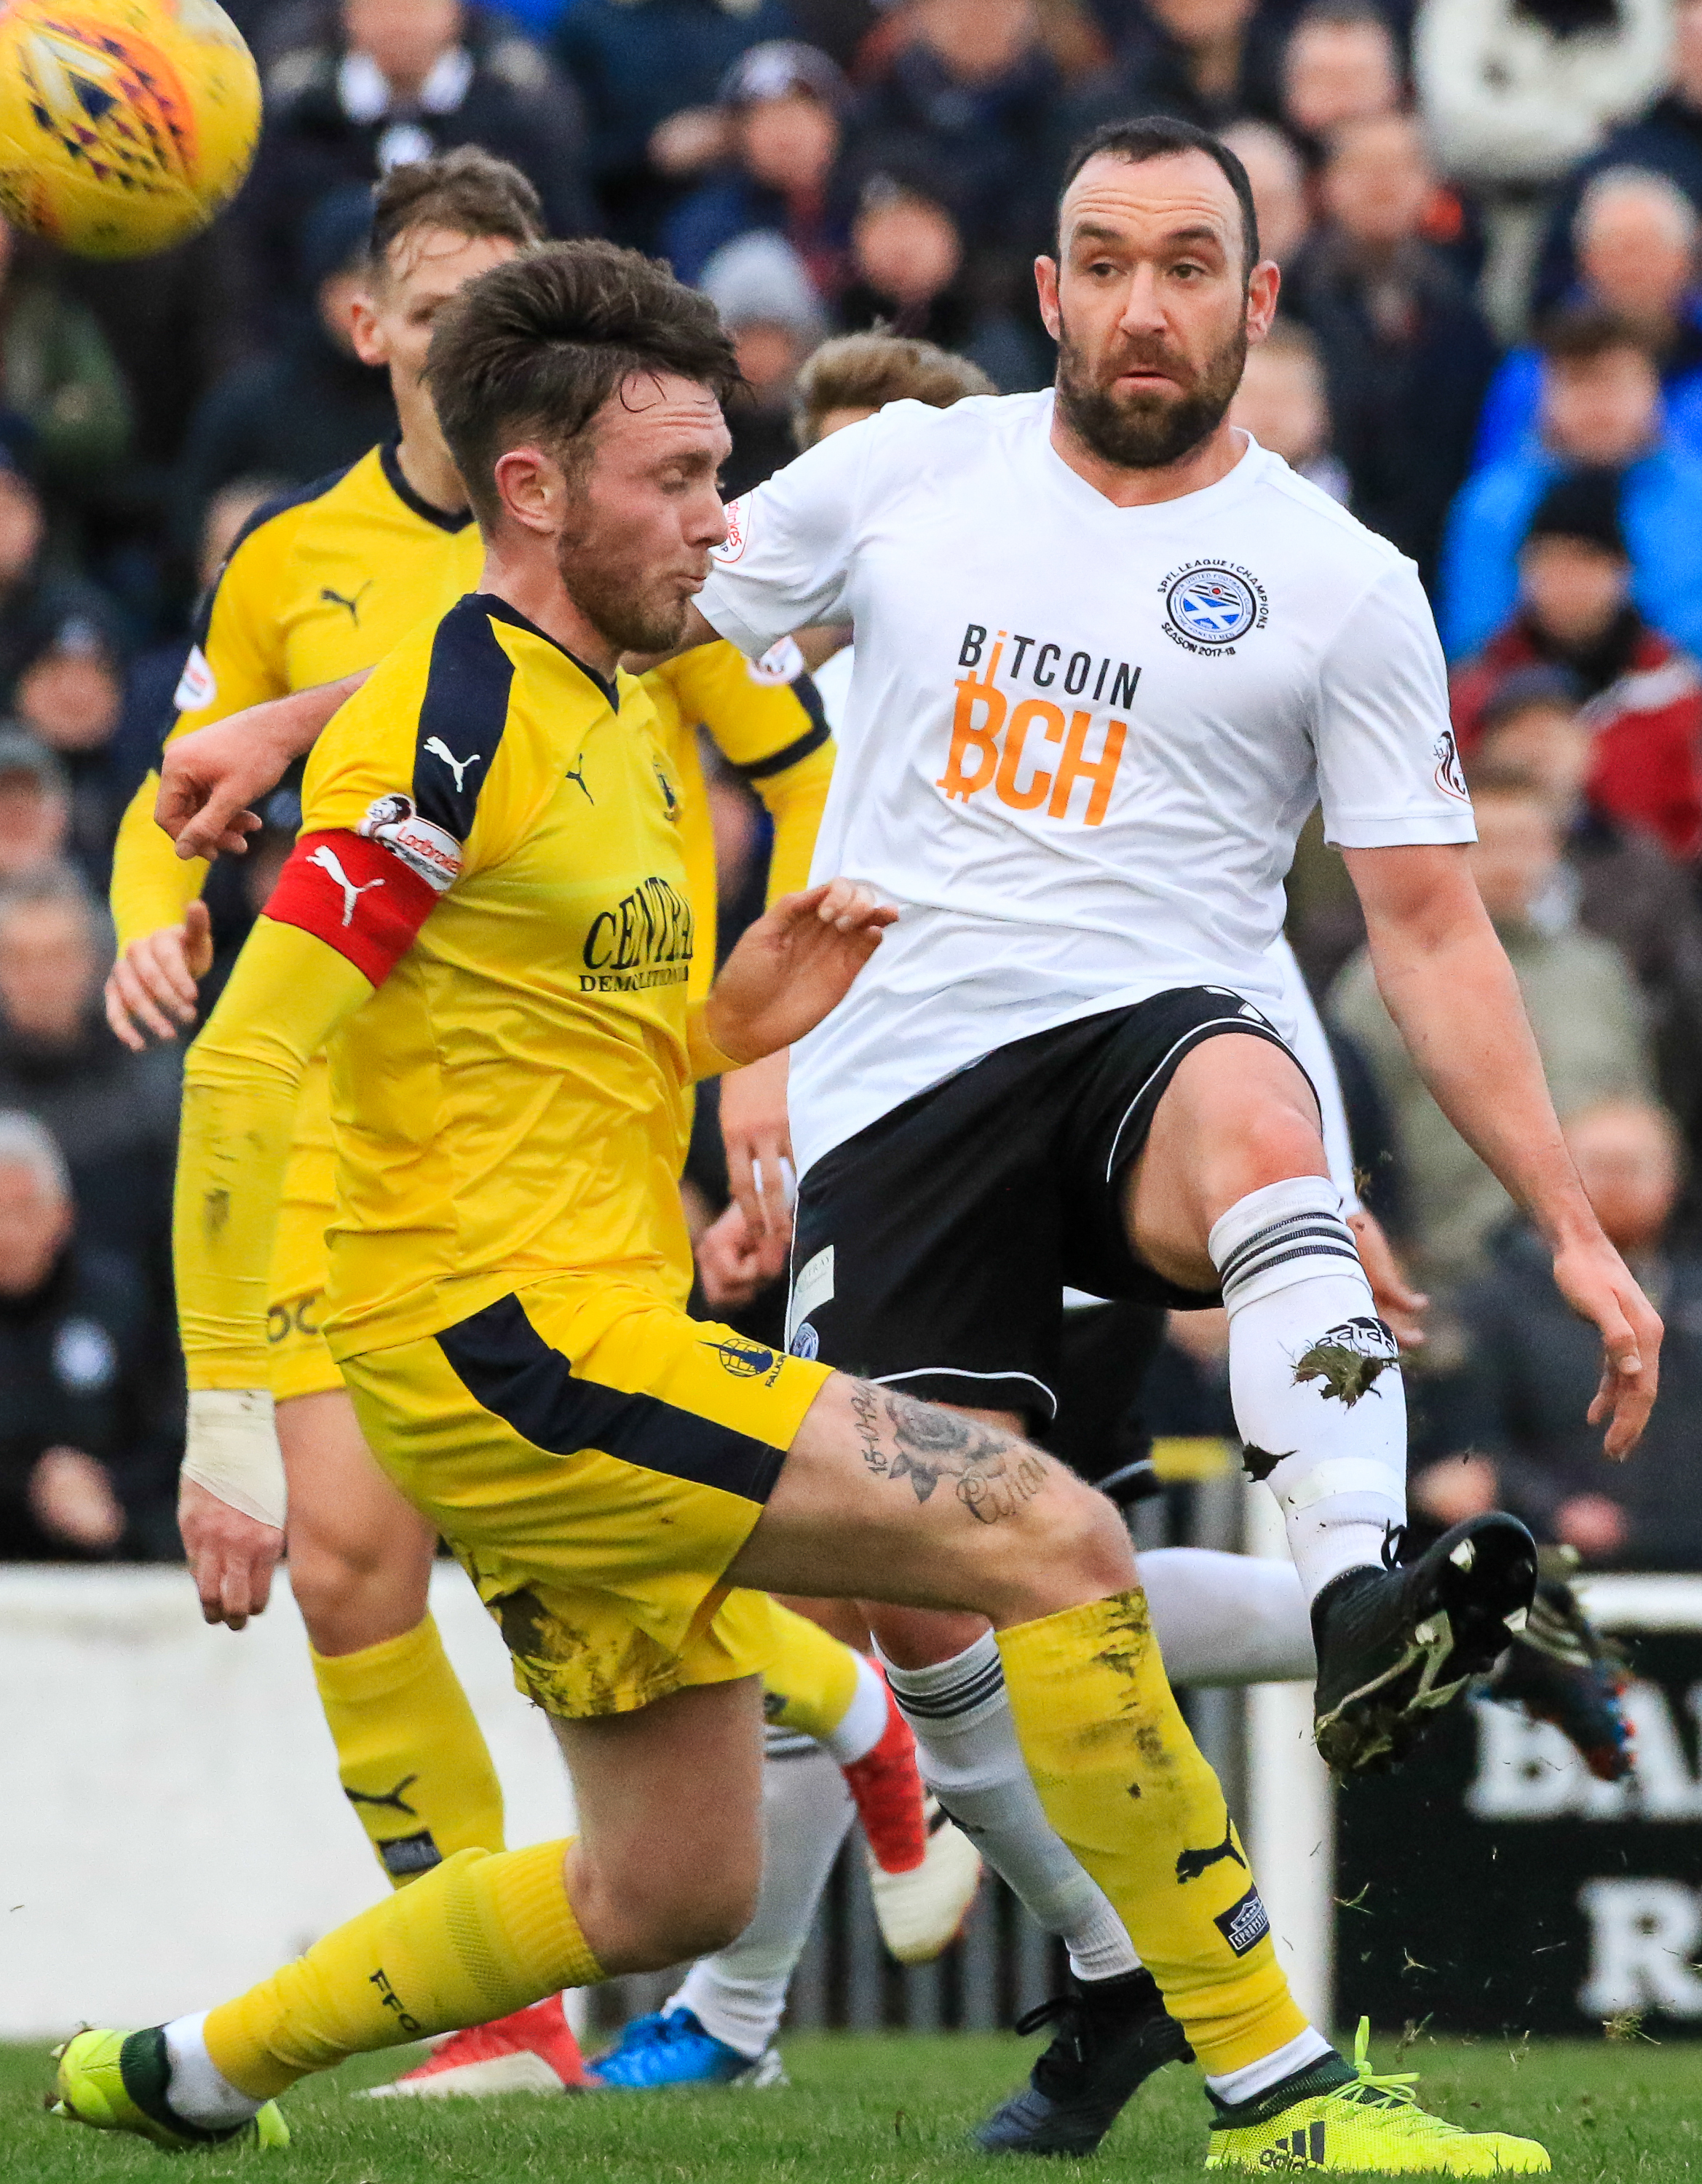 AGONISING DEFEAT: Ayr lost their unbeaten home record aaginst Falkirk.